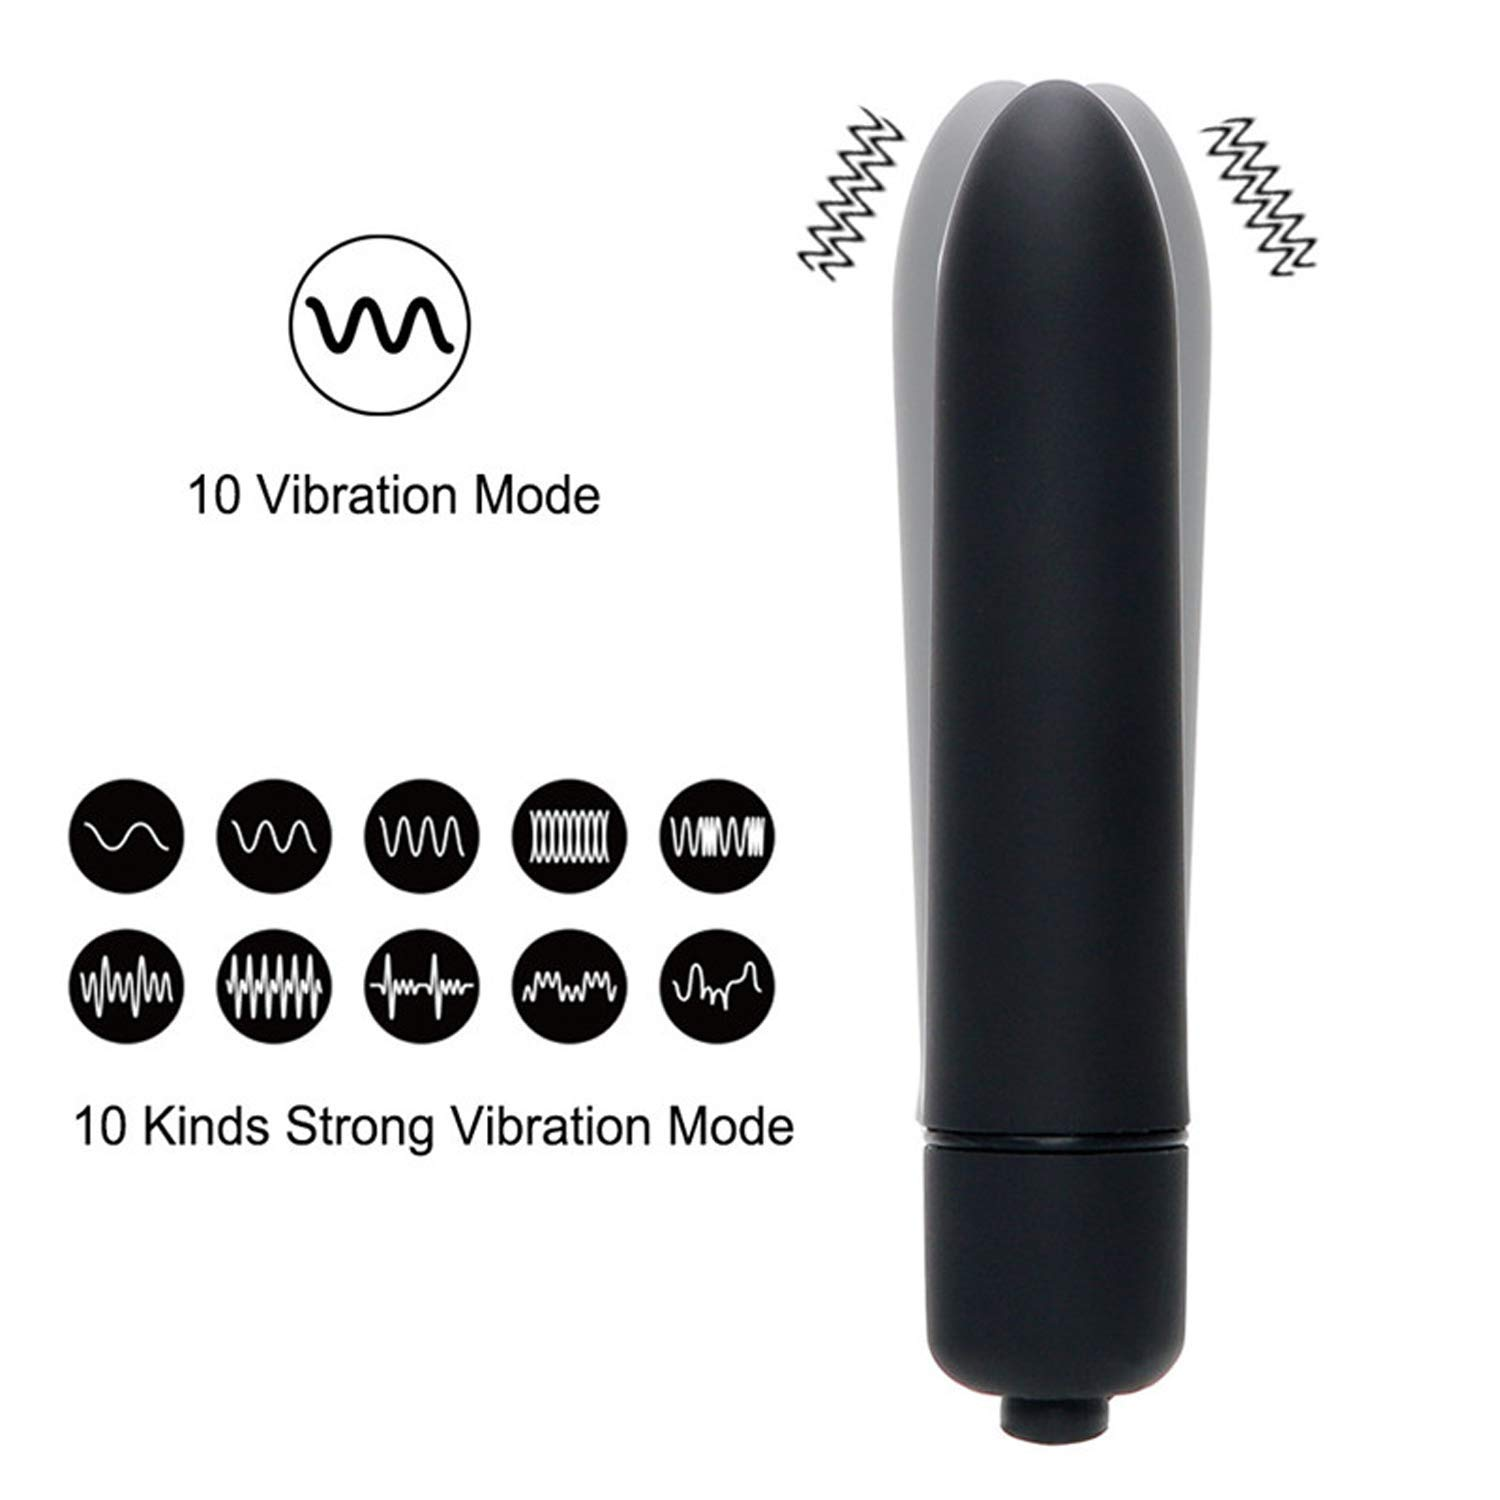 Discreet Bullet Vibrator Powerful 10-Speed G-Spot Stimulator 100% Waterproof